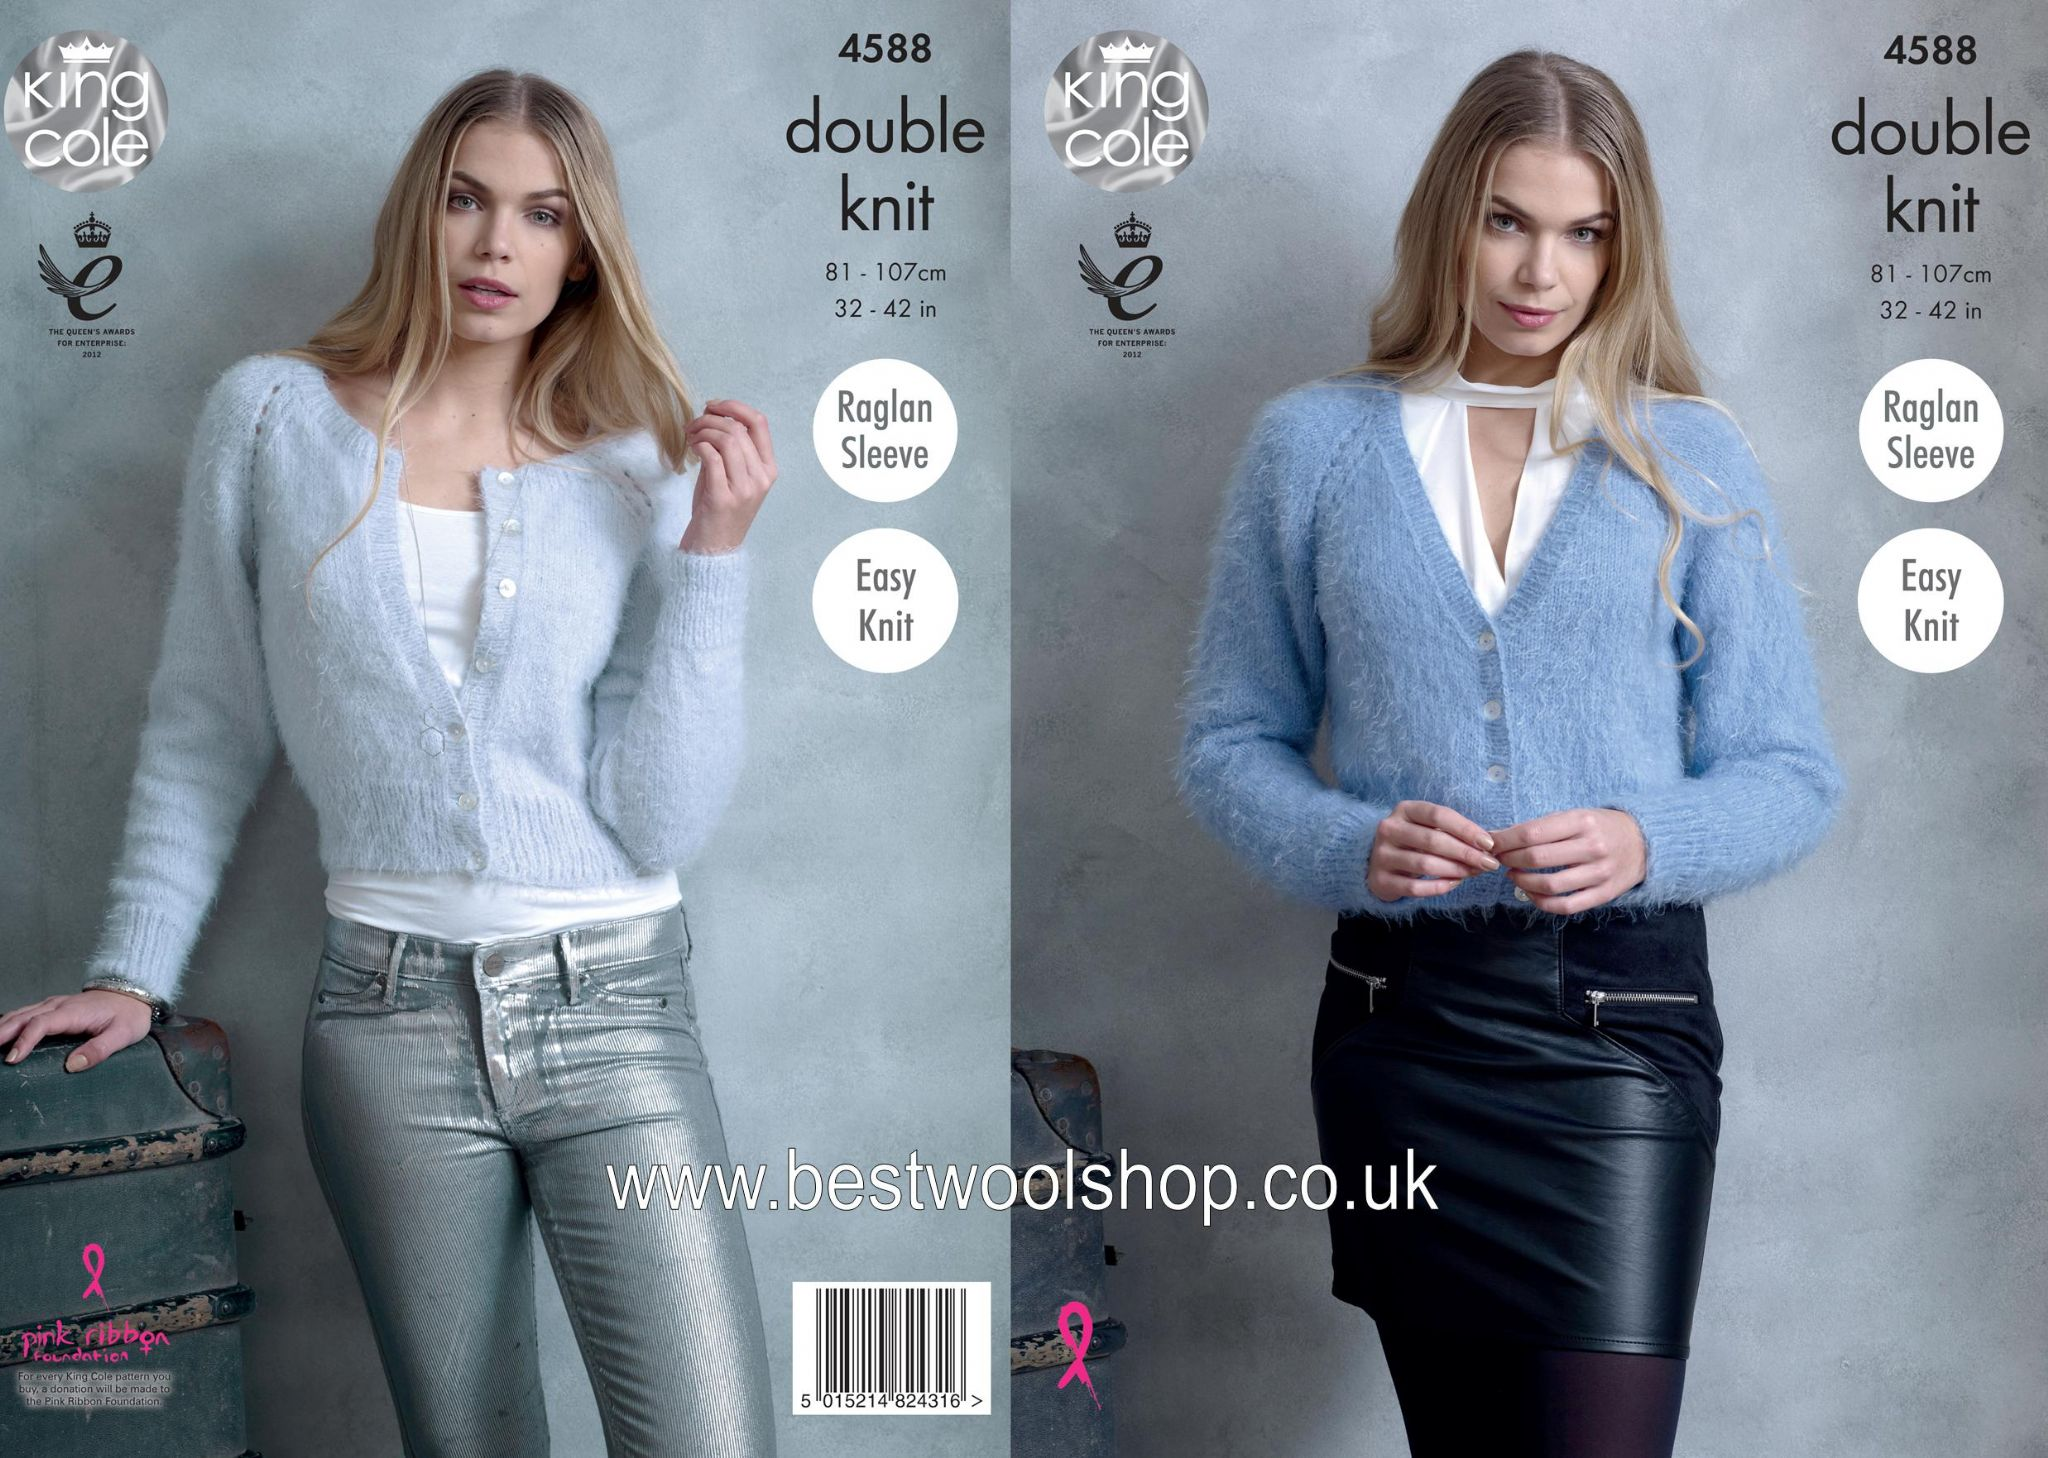 3bbc523394f2 4588 - KING COLE EMBRACE DK EASY KNIT ROUND   V-NECK RAGLAN SLEEVE CARDIGAN  KNITTING PATTERN - TO FIT CHEST 32 TO 42